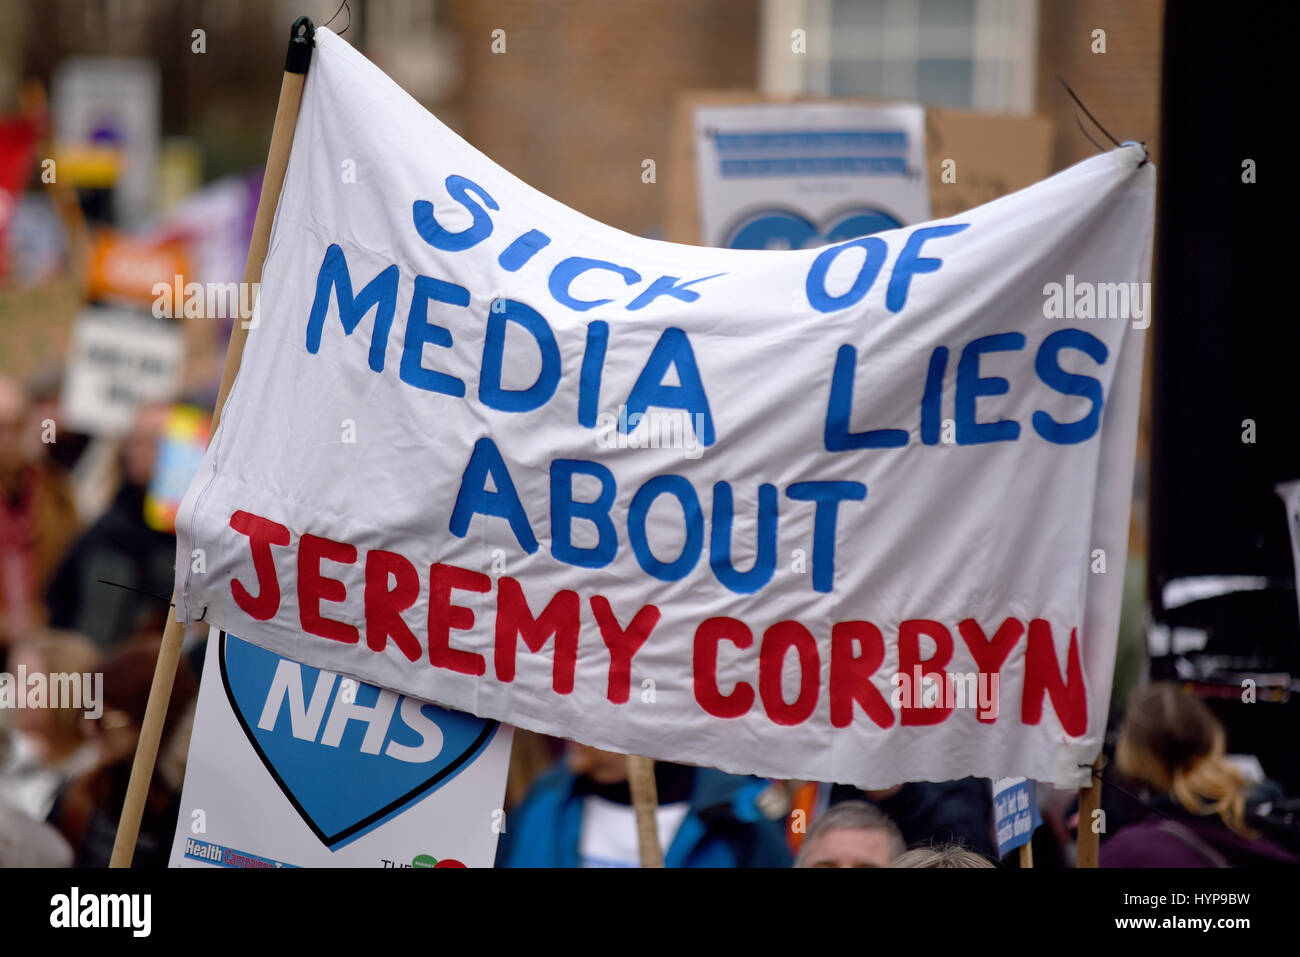 fake-news-comment-on-a-banner-supporting-jeremy-corbyn-stating-sick-HYP9BW.jpg